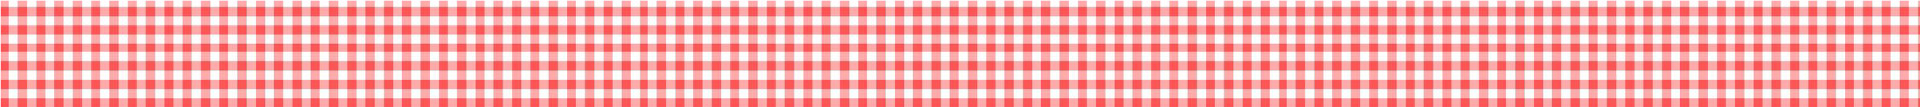 MLV-gingham-stripe